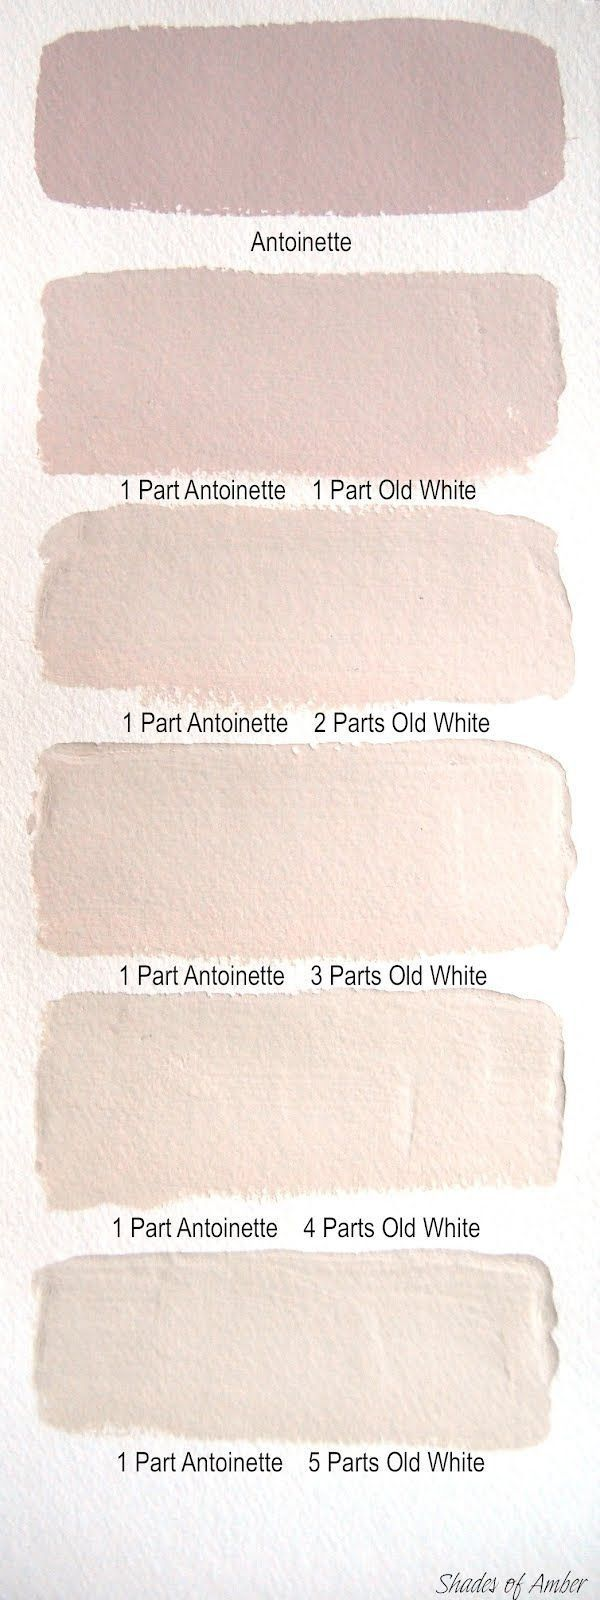 Dulux Colour of the Year 2015: Add Copper Blush to Your